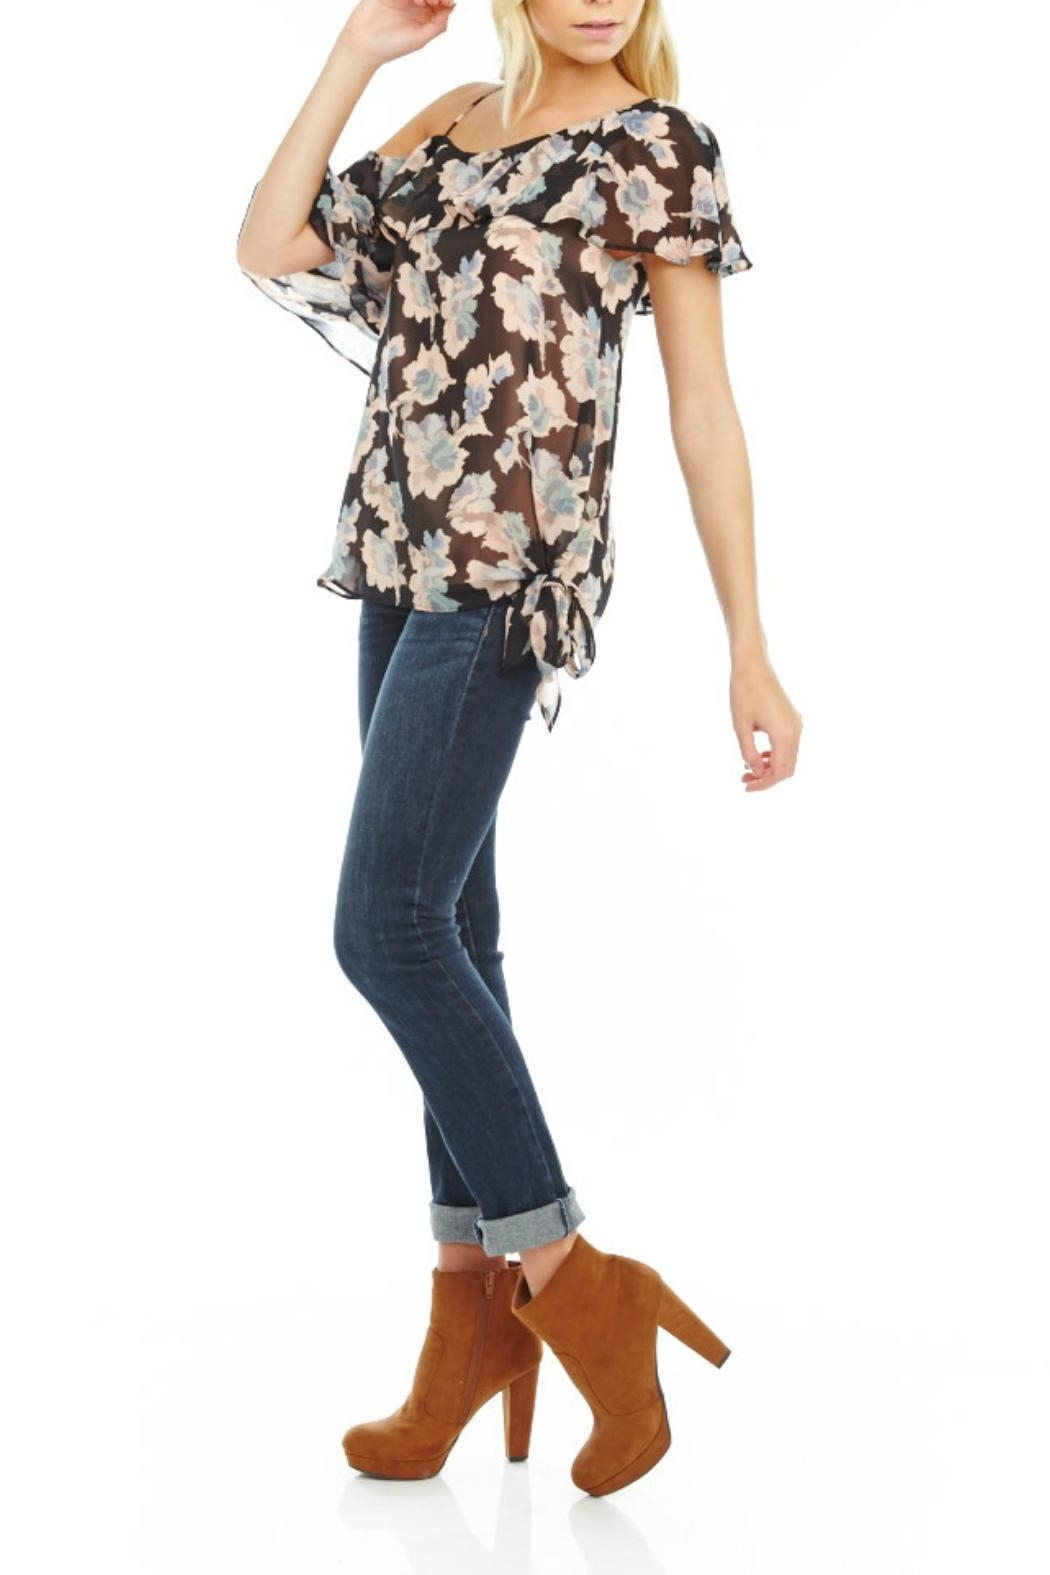 Mabel & Mary Moonlight One-Shoulder Top - Front Full Image